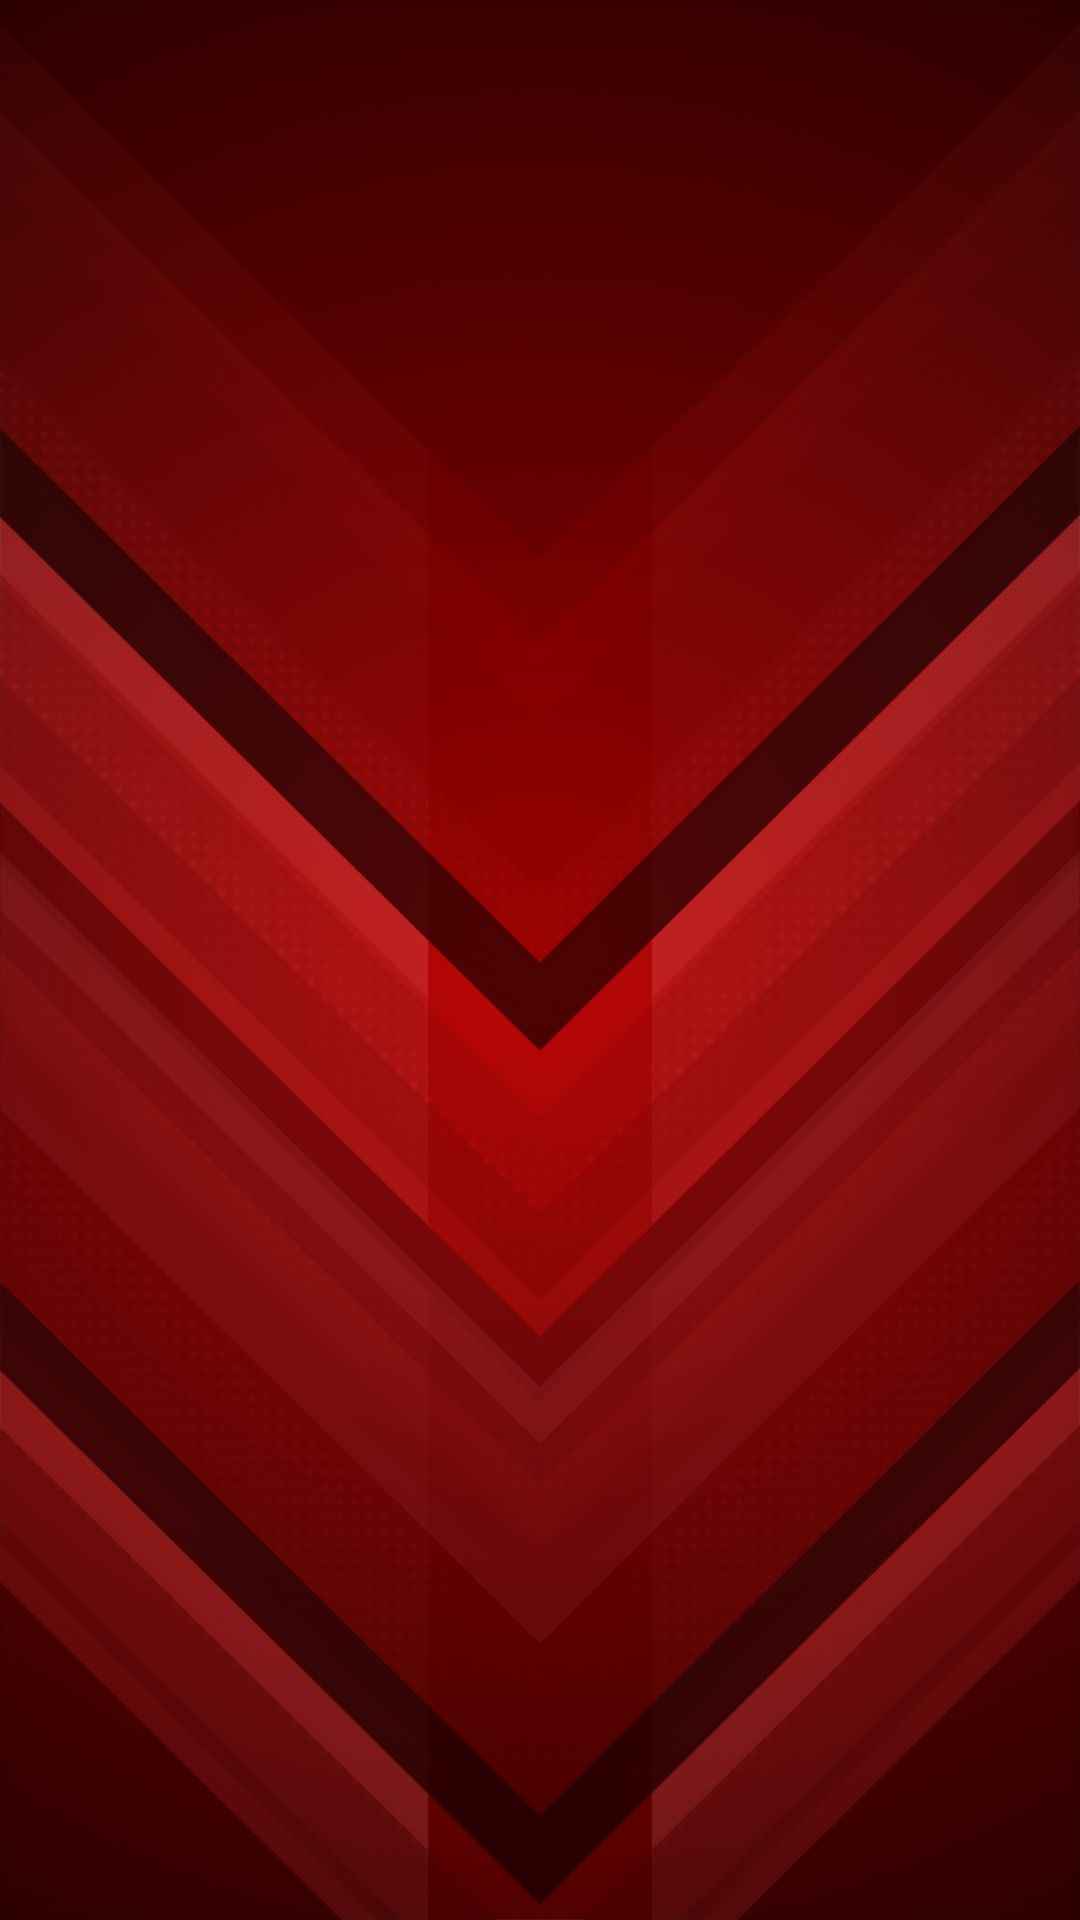 Red Abstract Wallpaper Colorful Wallpaper Abstract Wallpaper